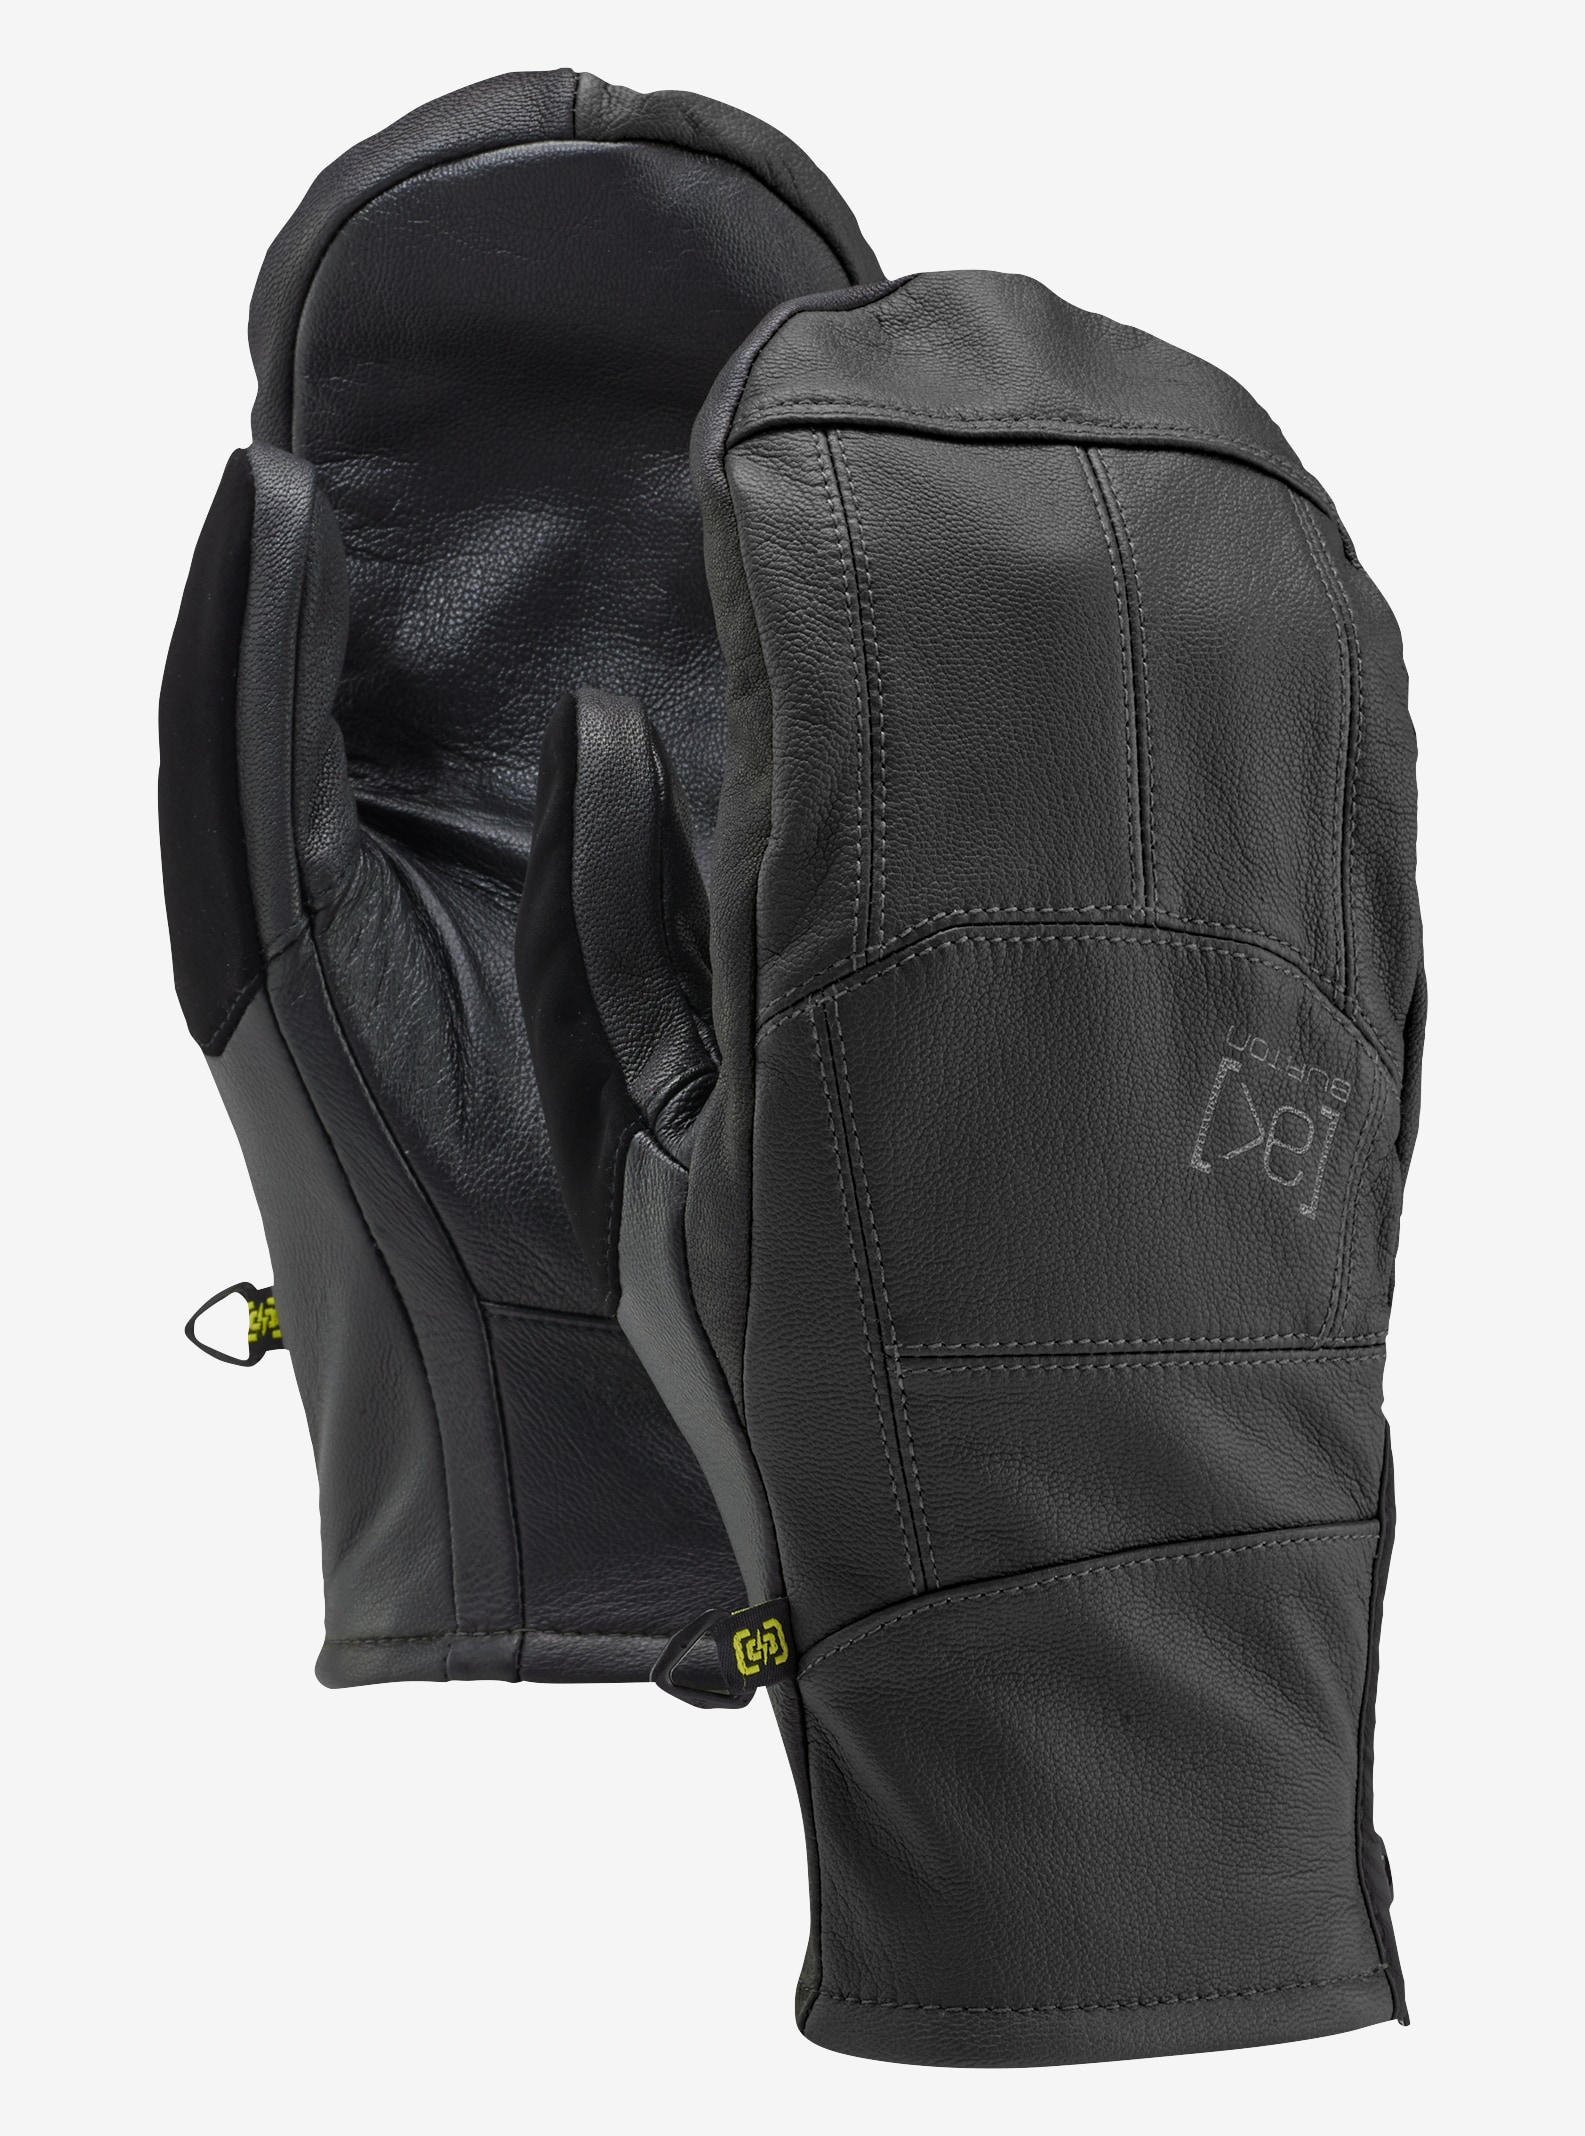 Burton [ak] Leather Tech Mitt shown in True Black